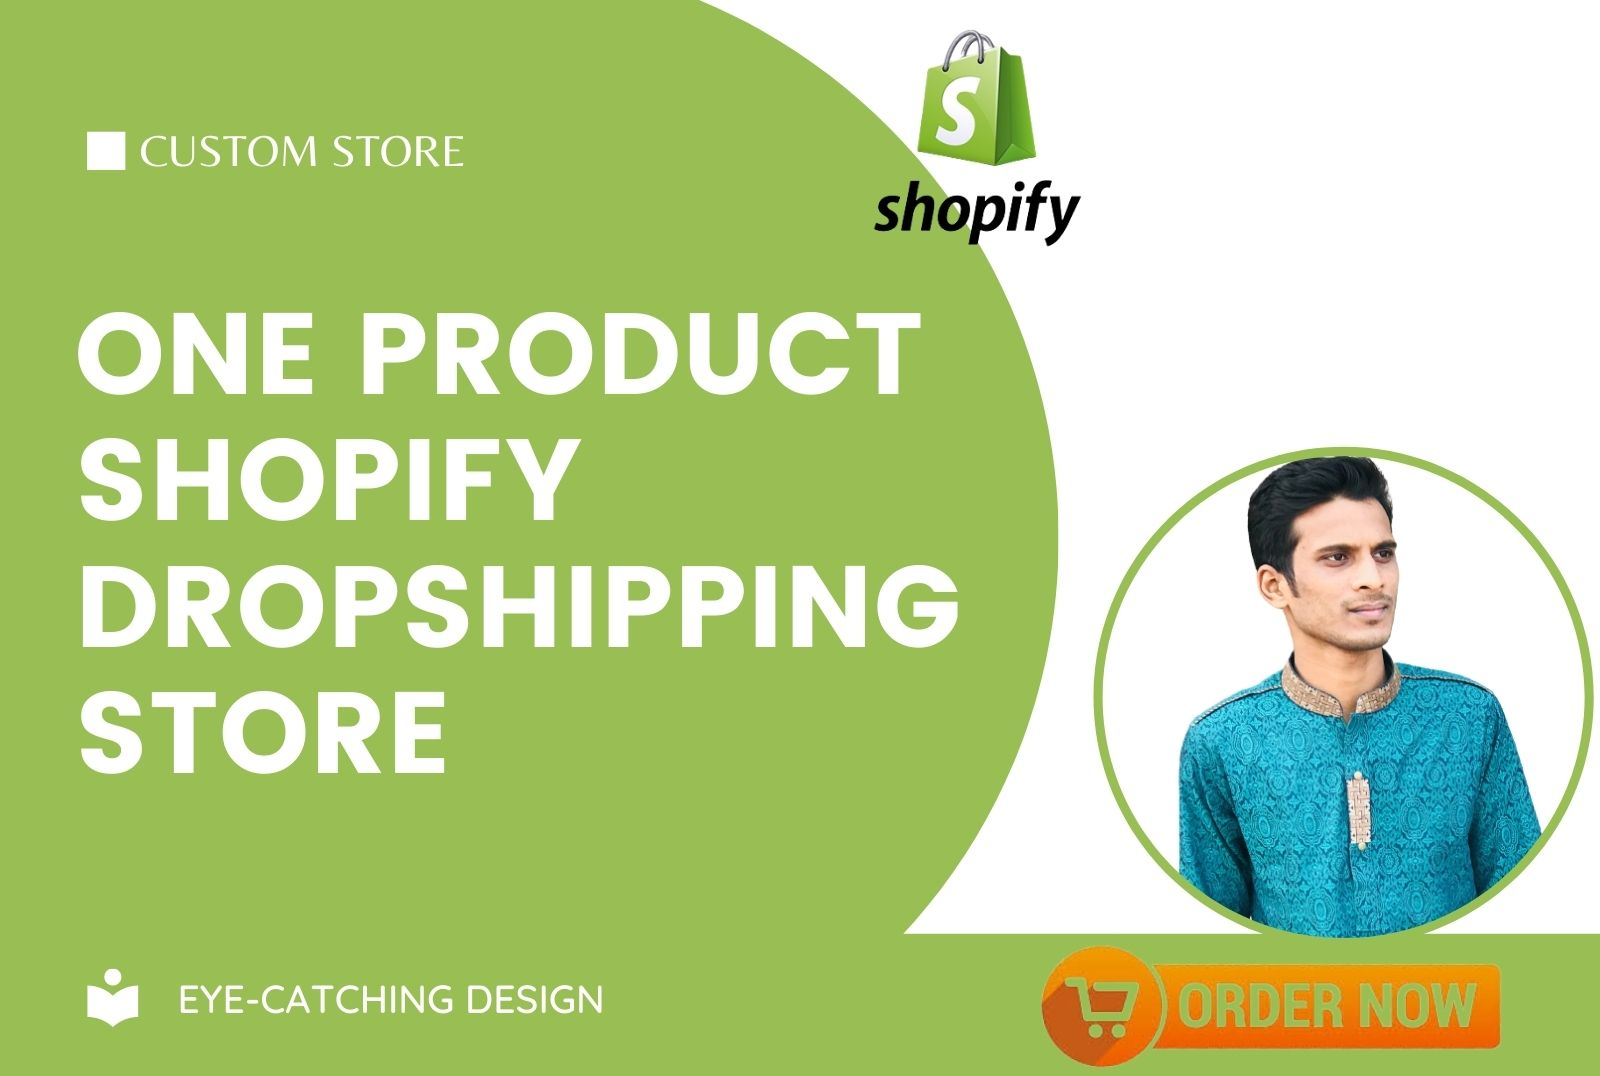 I will build one product shopify dropshipping store using oberlo